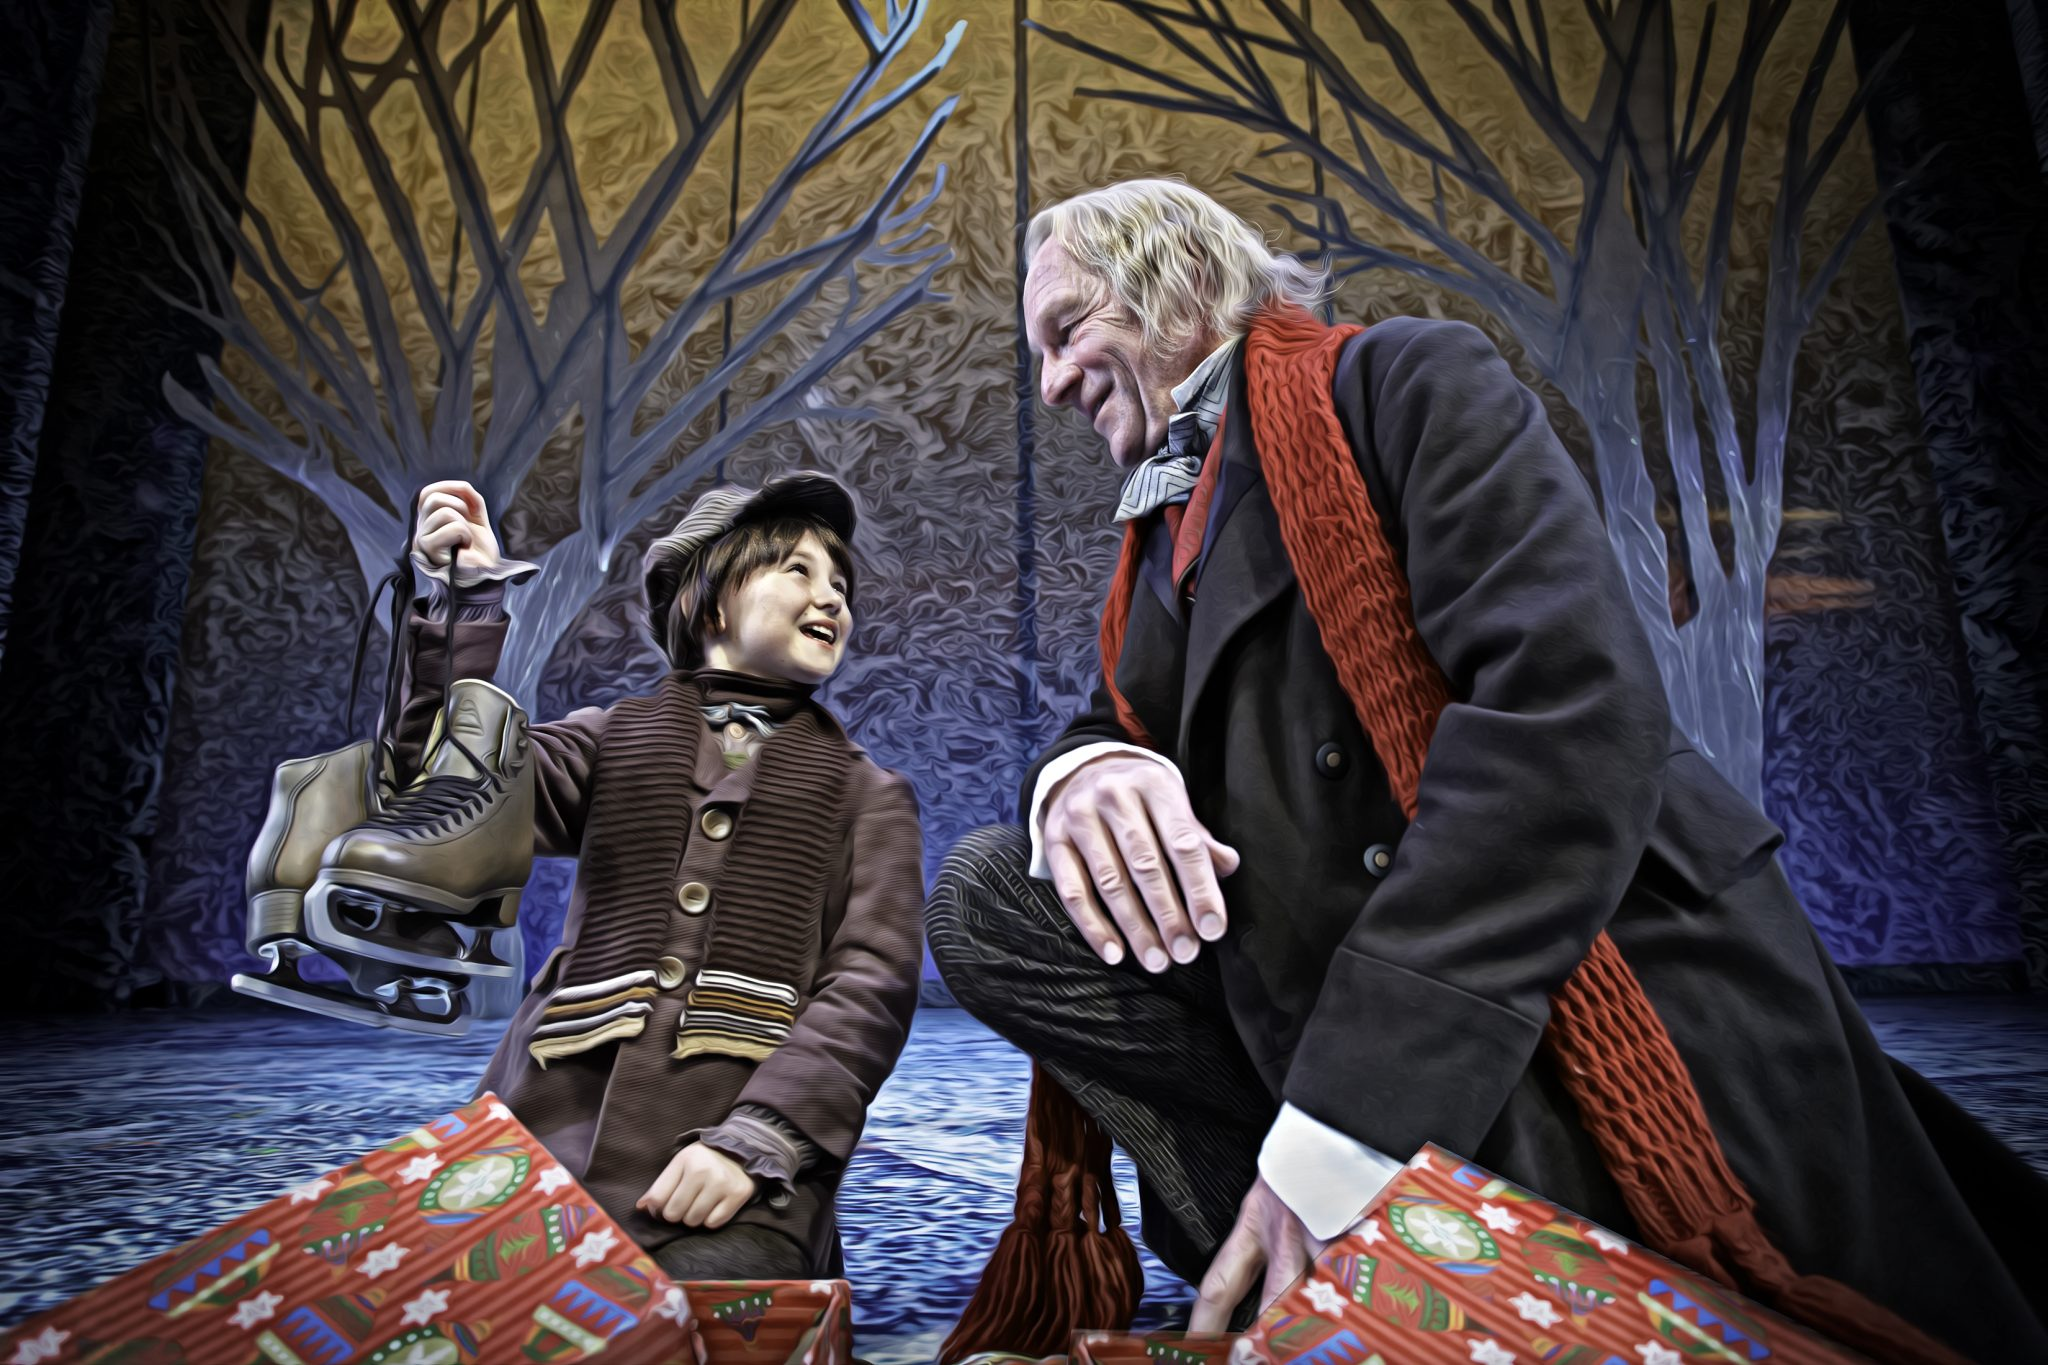 Scrooge and Tim with Skates